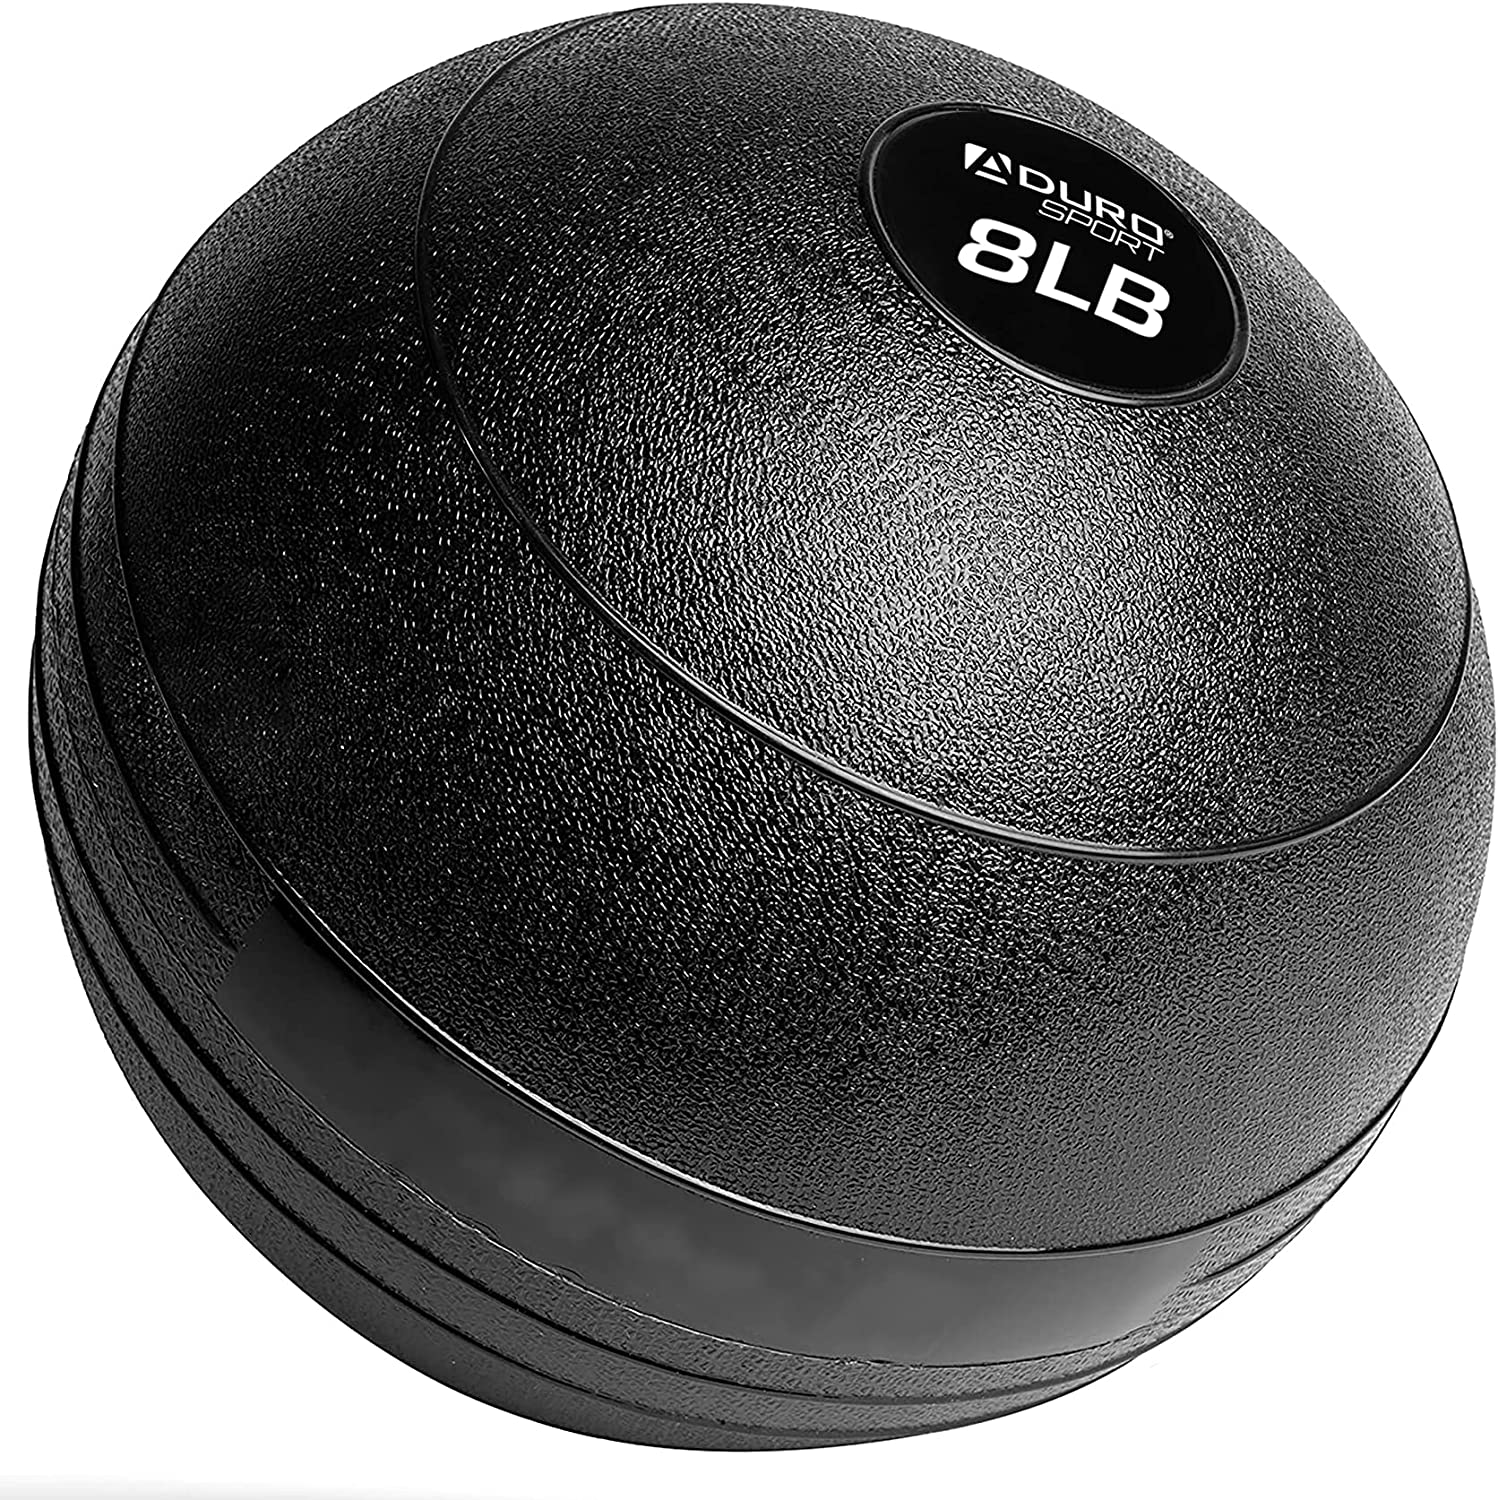 Aduro Sport Exercise Ball Indefinitely 5 ☆ popular Weighted for Medicine Ba Workouts